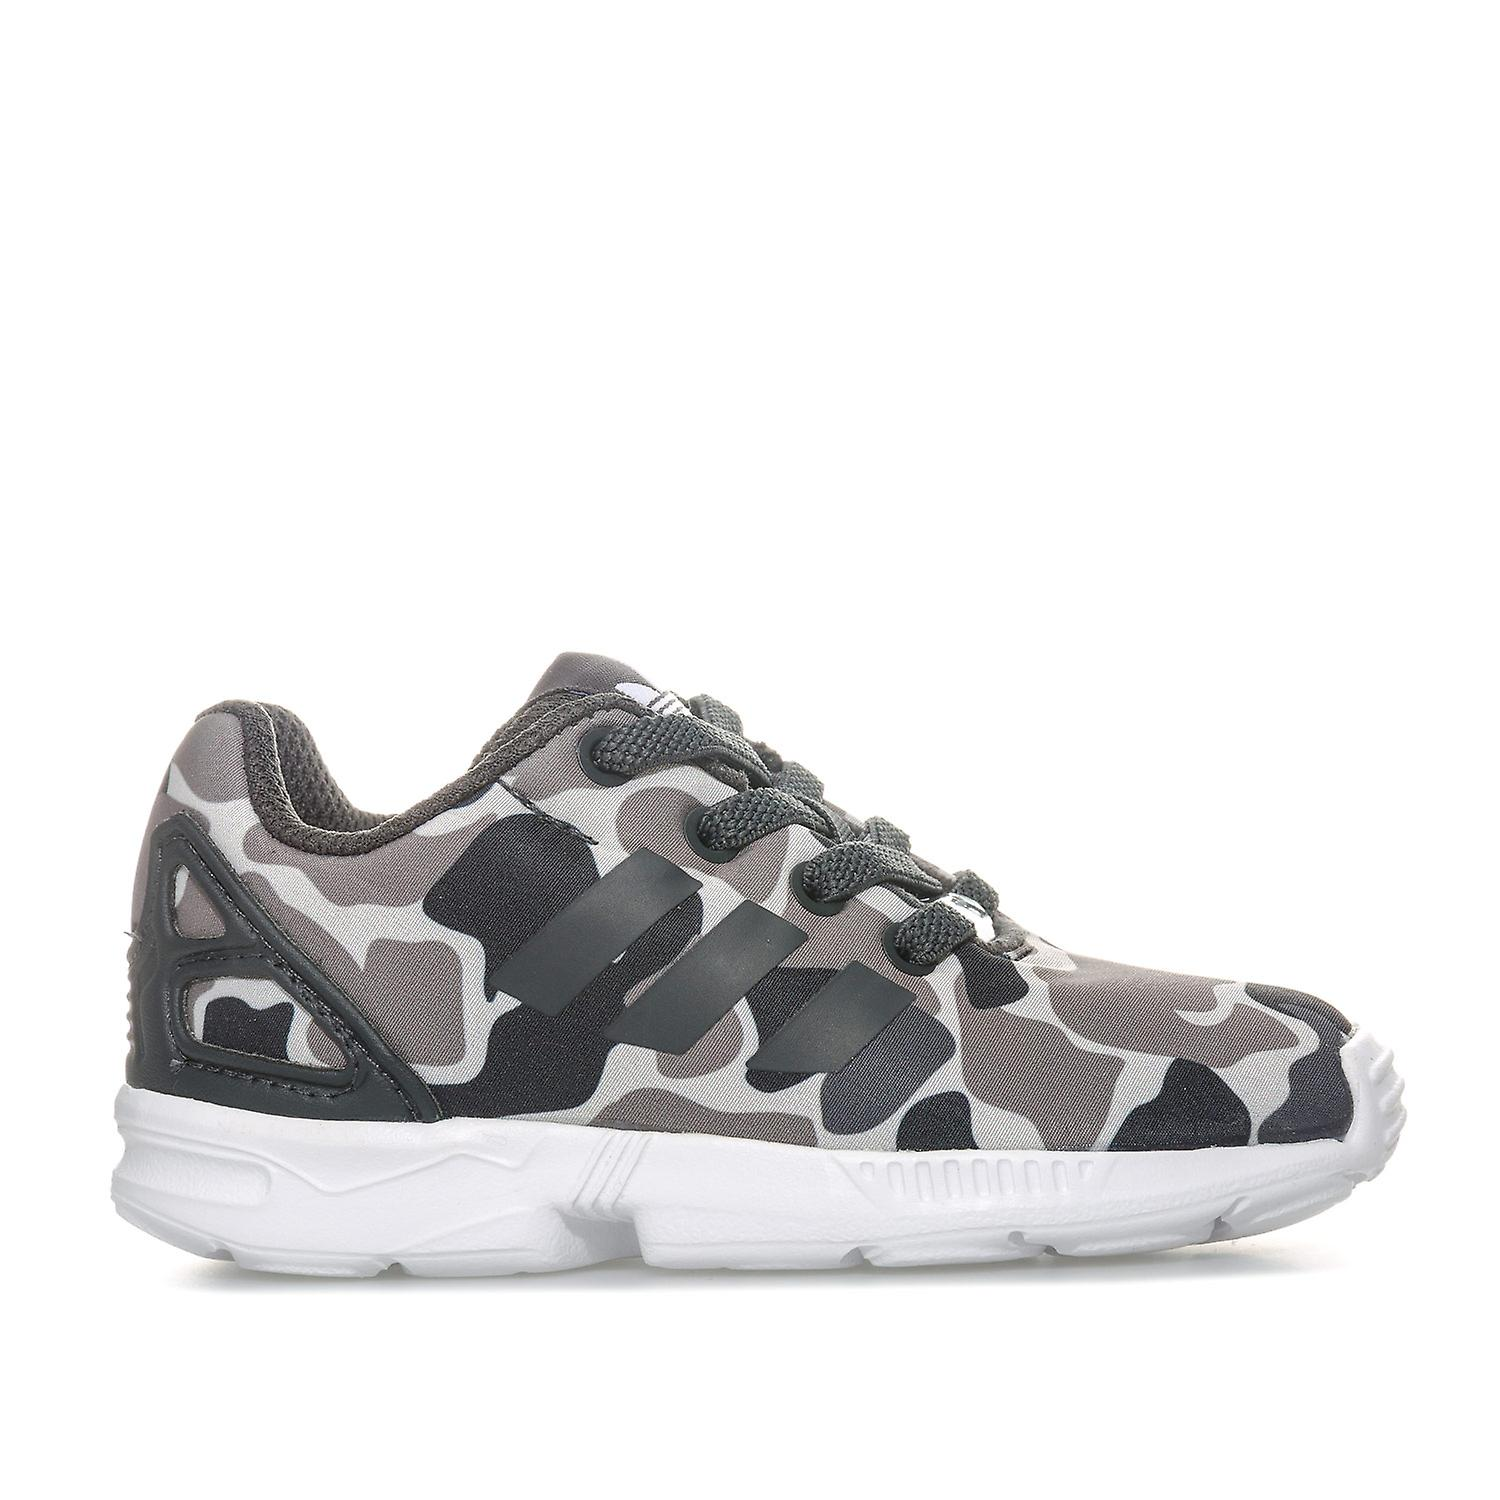 sports shoes 23ffc 99bb4 Infant Boys adidas Originals Zx Flux Camo Trainers In Black Grey-  Elasticated